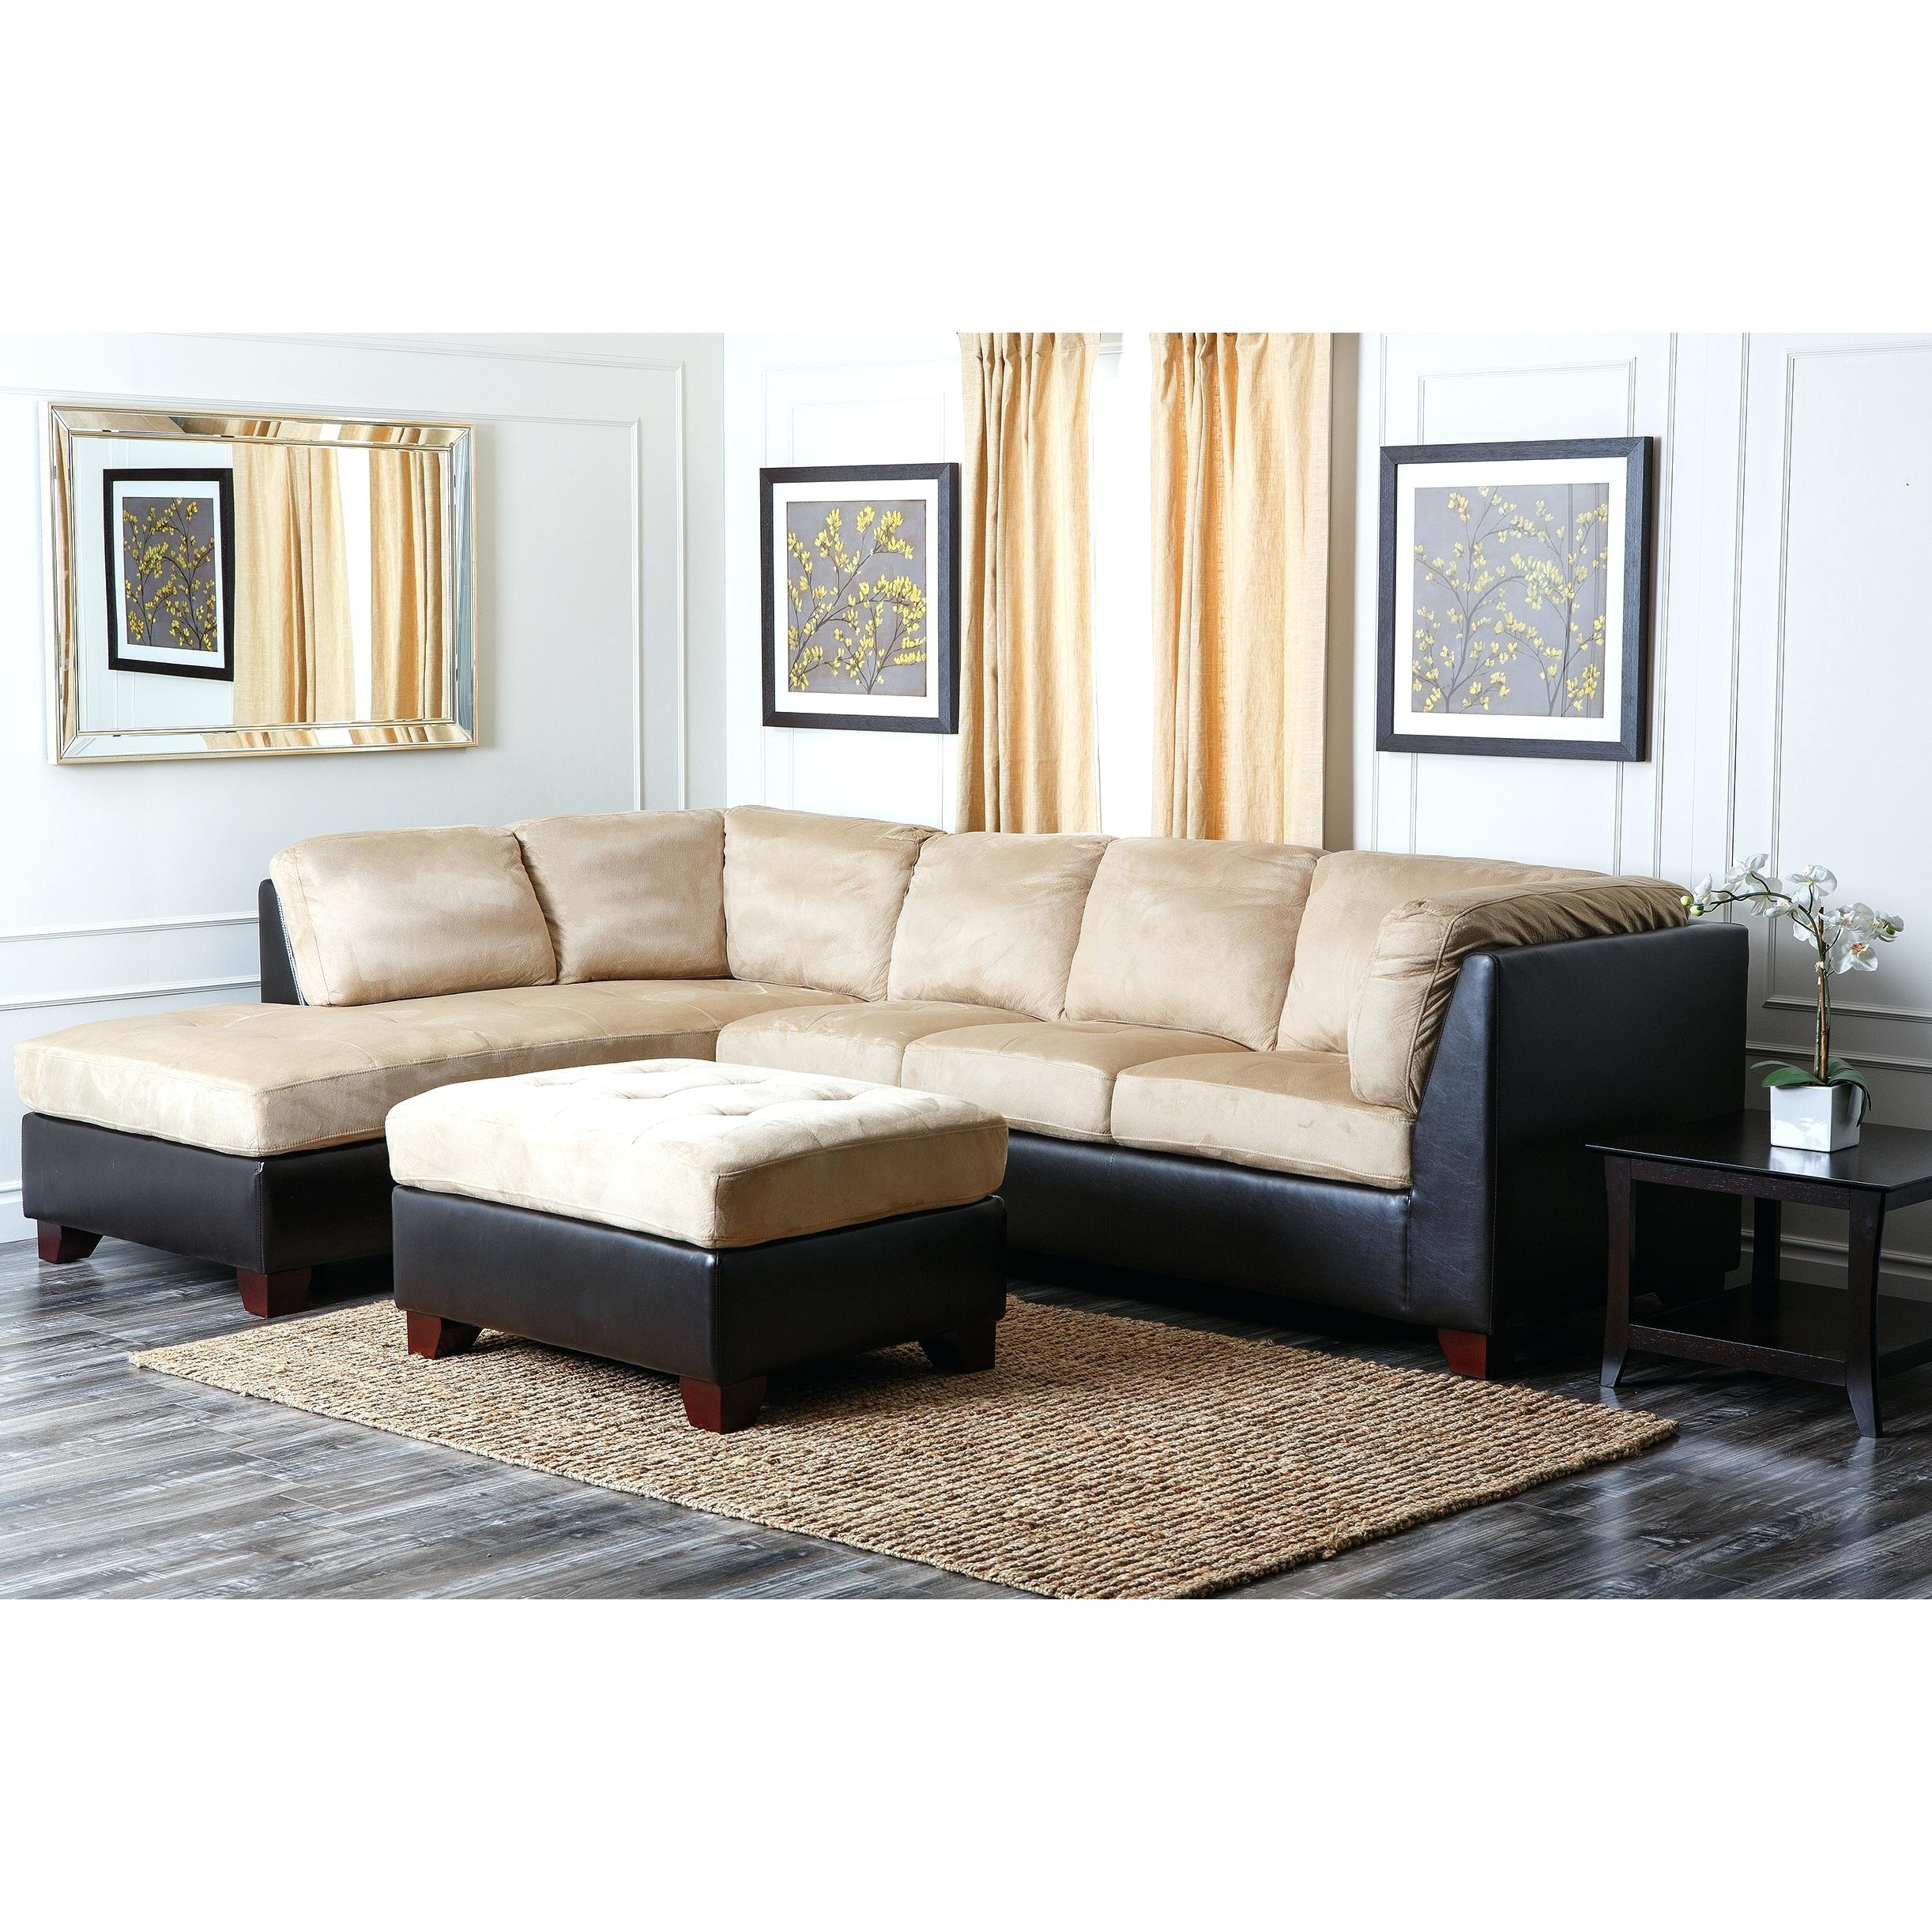 leather sofas charlotte nc ikea velvet sofa 12 collection of abbyson living beige sectional